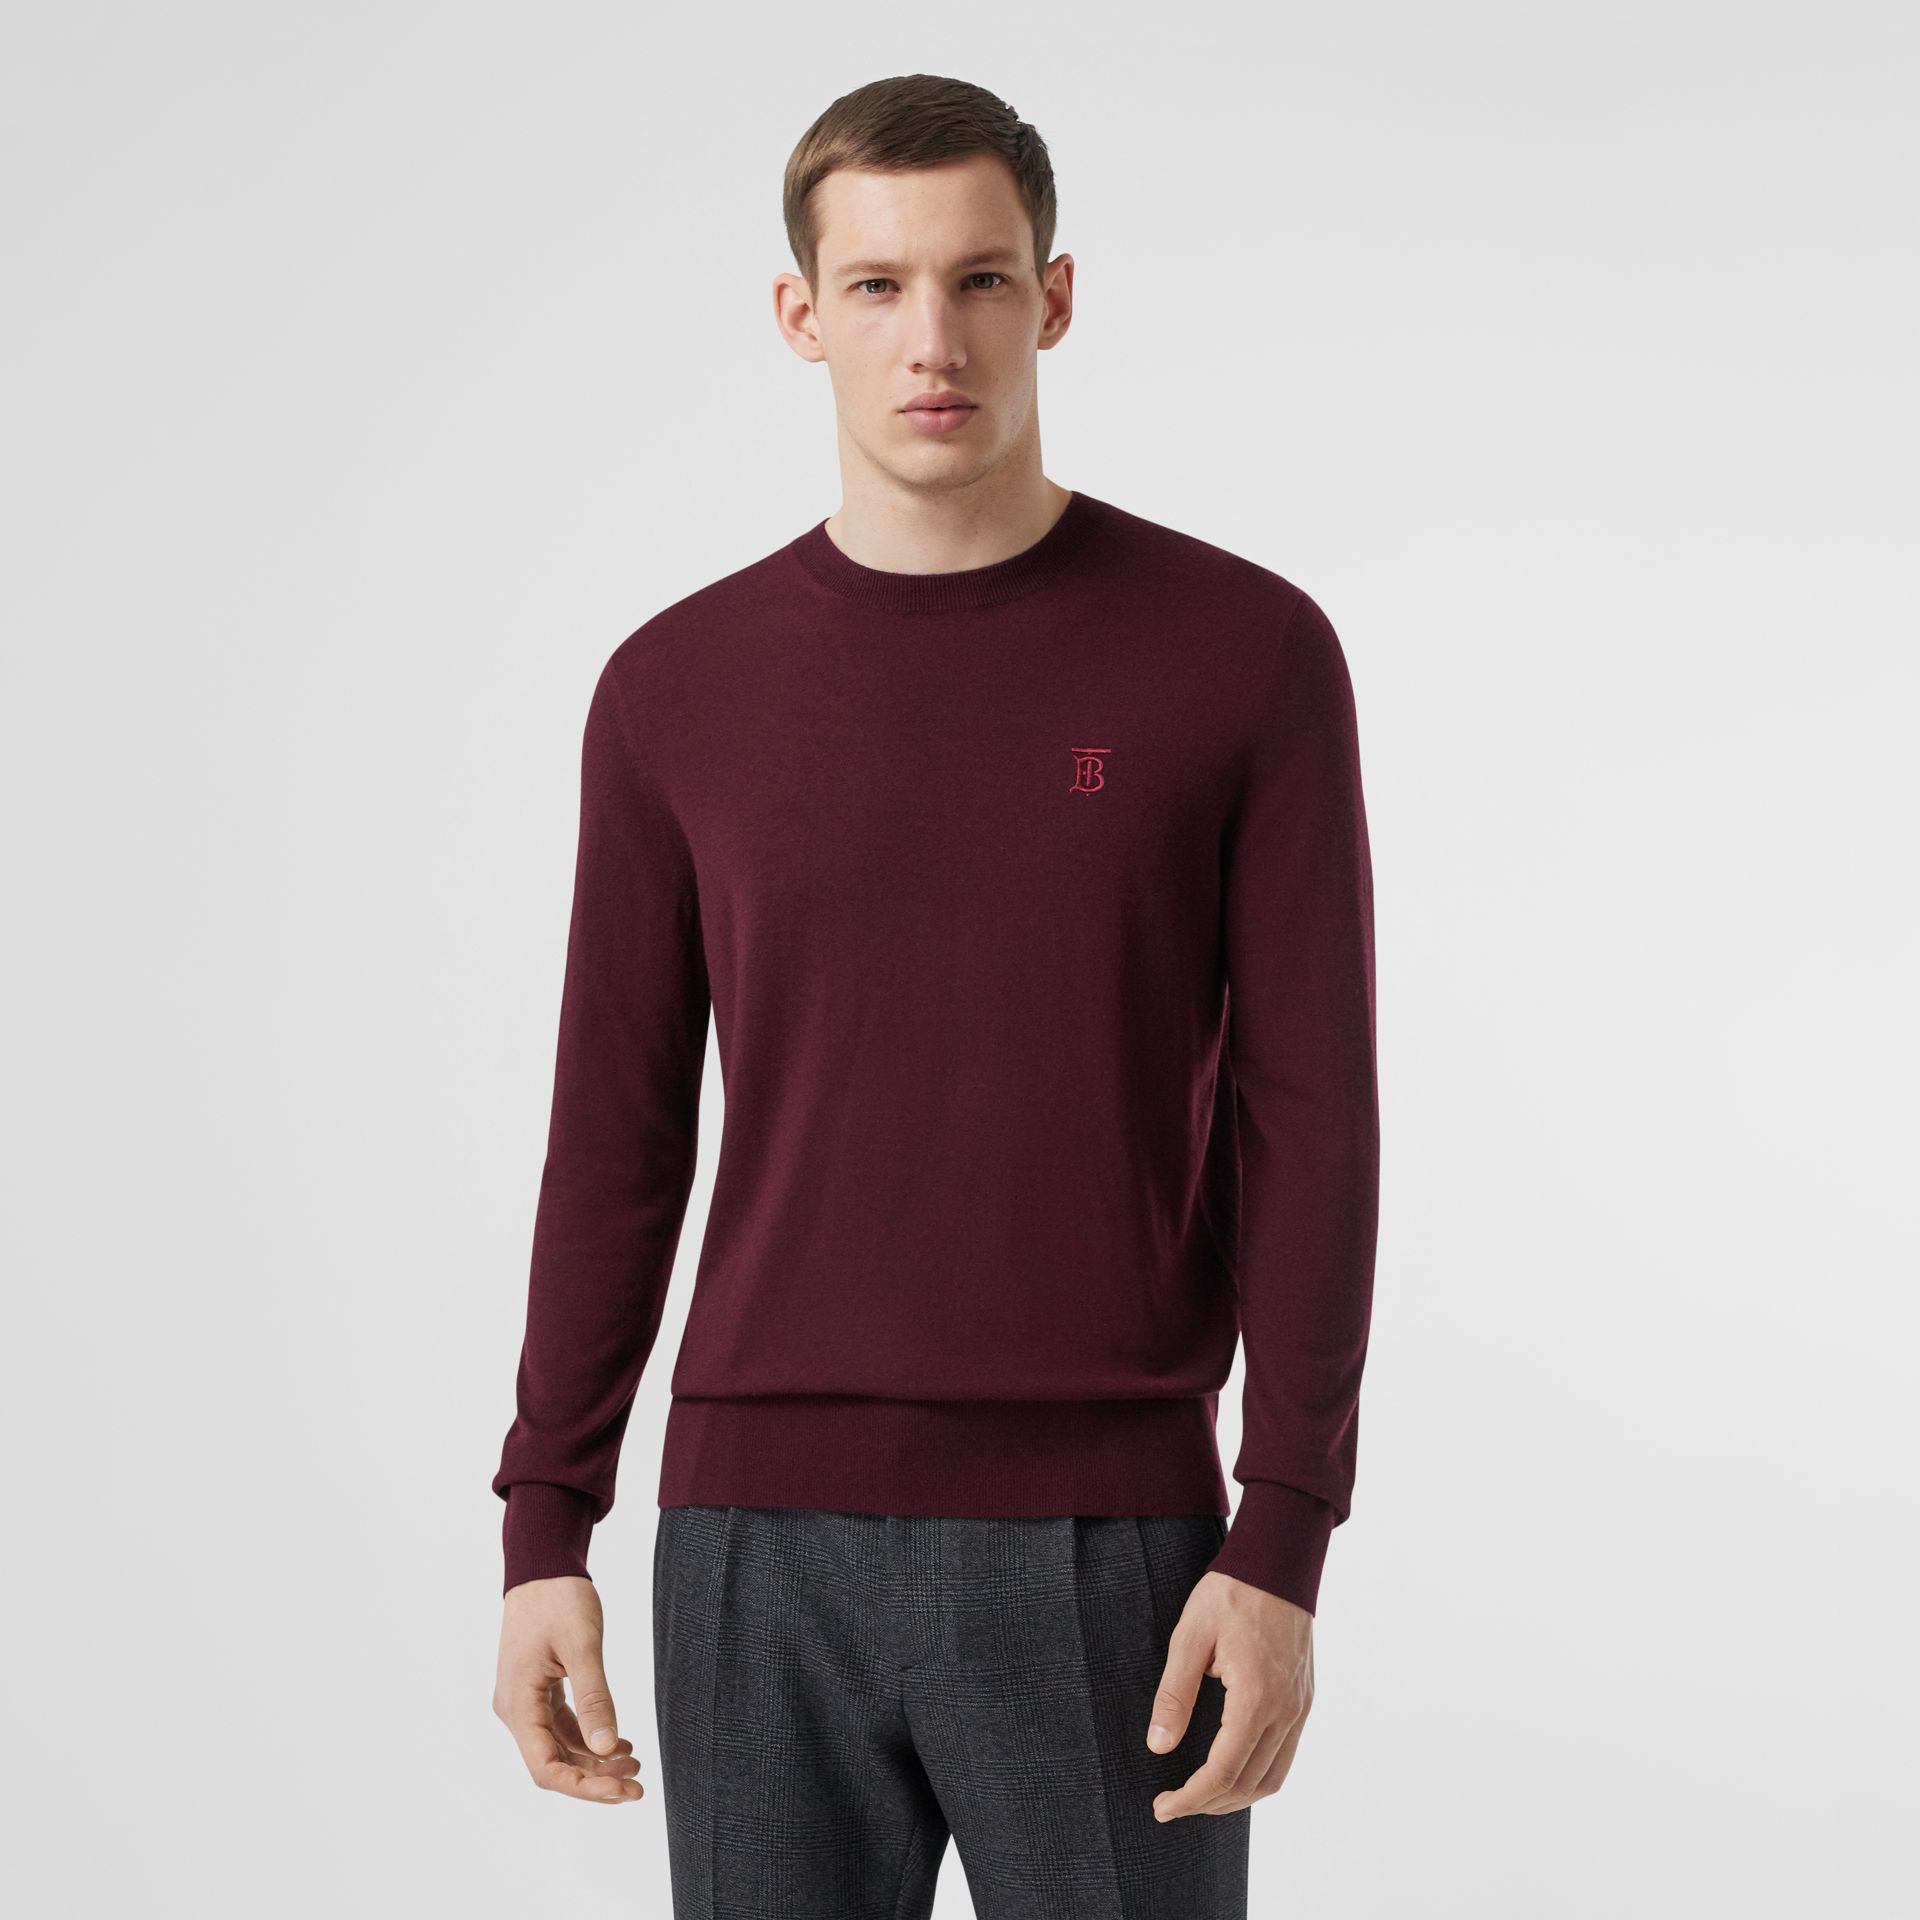 Monogram Motif Cashmere Sweater in Burgundy - Men | Burberry - gallery image 4